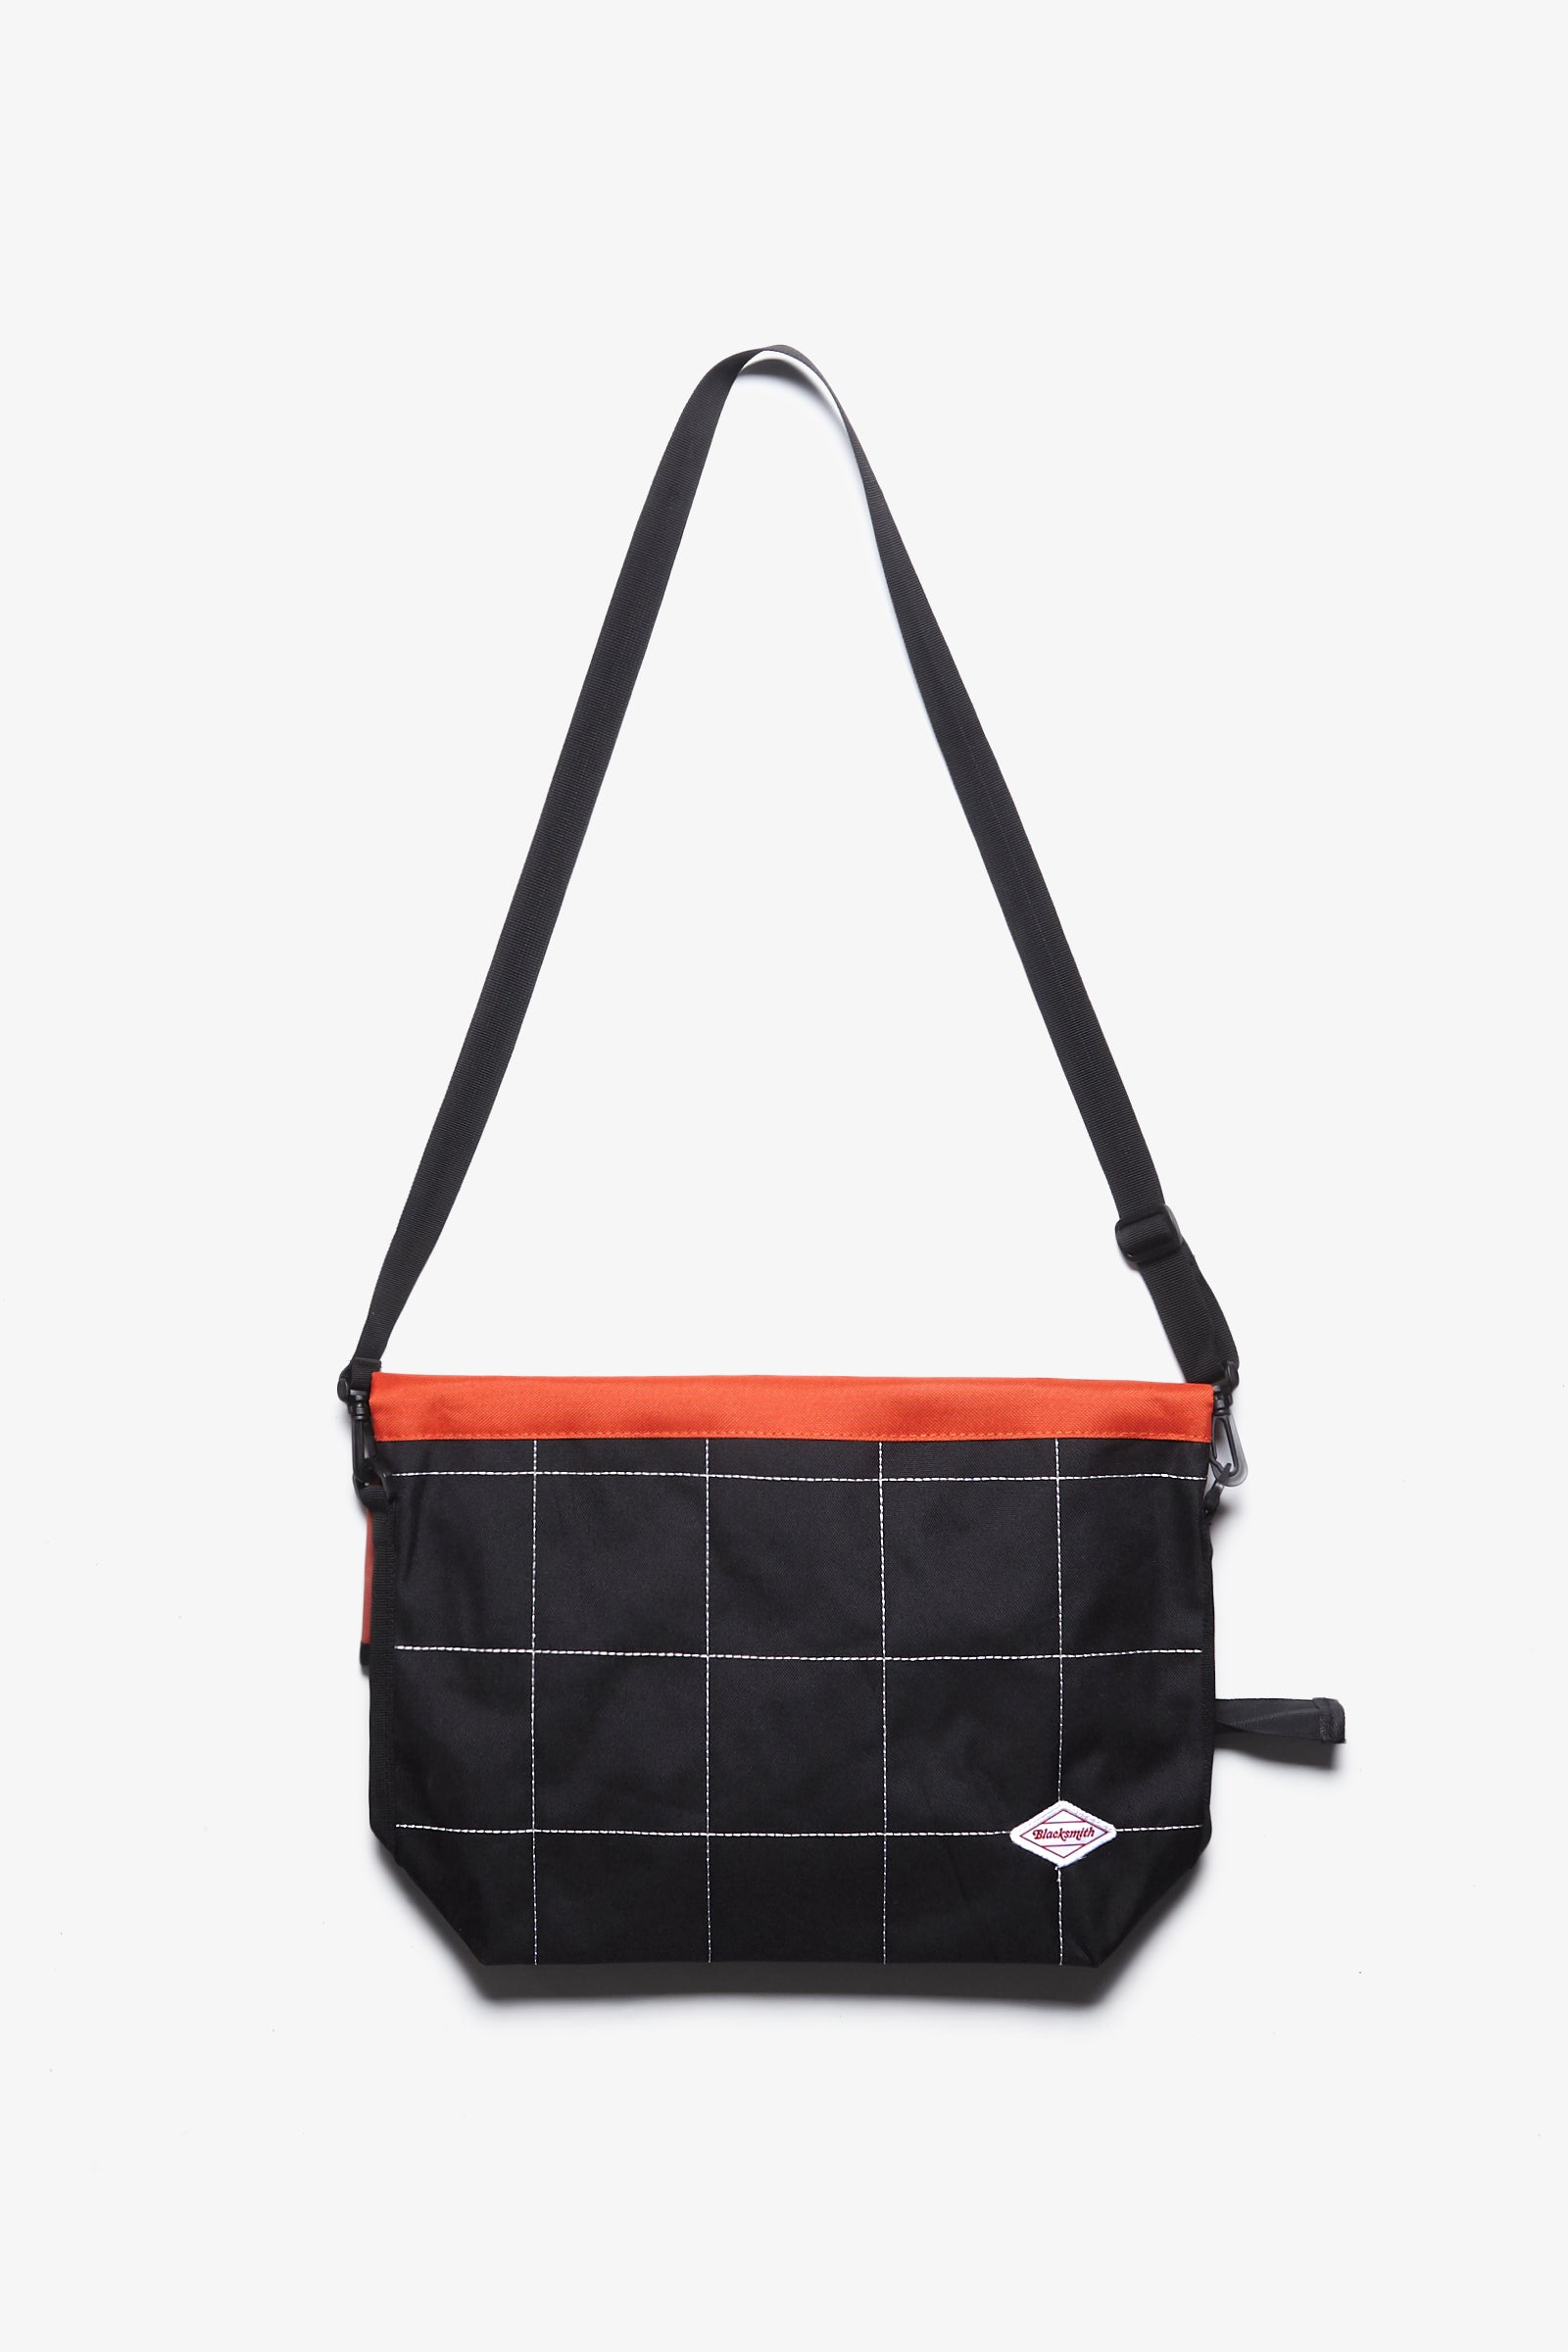 Blacksmith - 3 Way Tote - Lava/Black